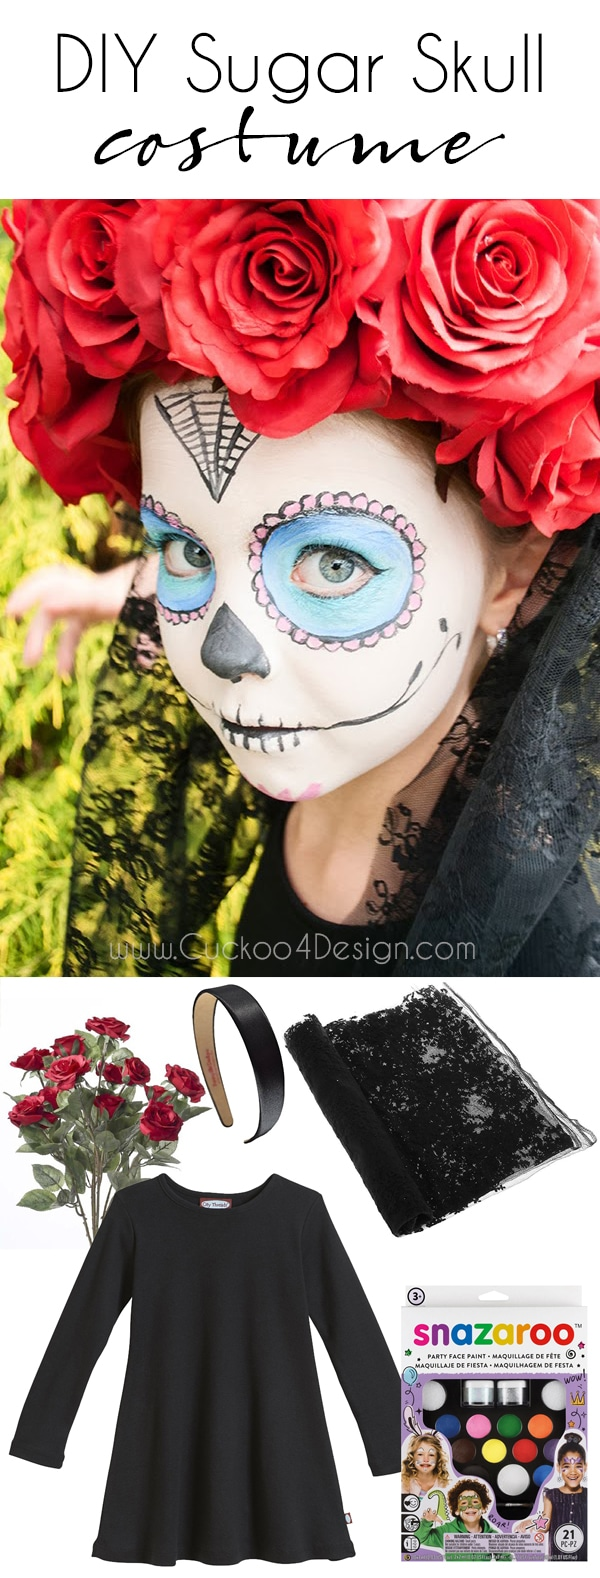 Sugar Skull Costume Diy Cuckoo4design